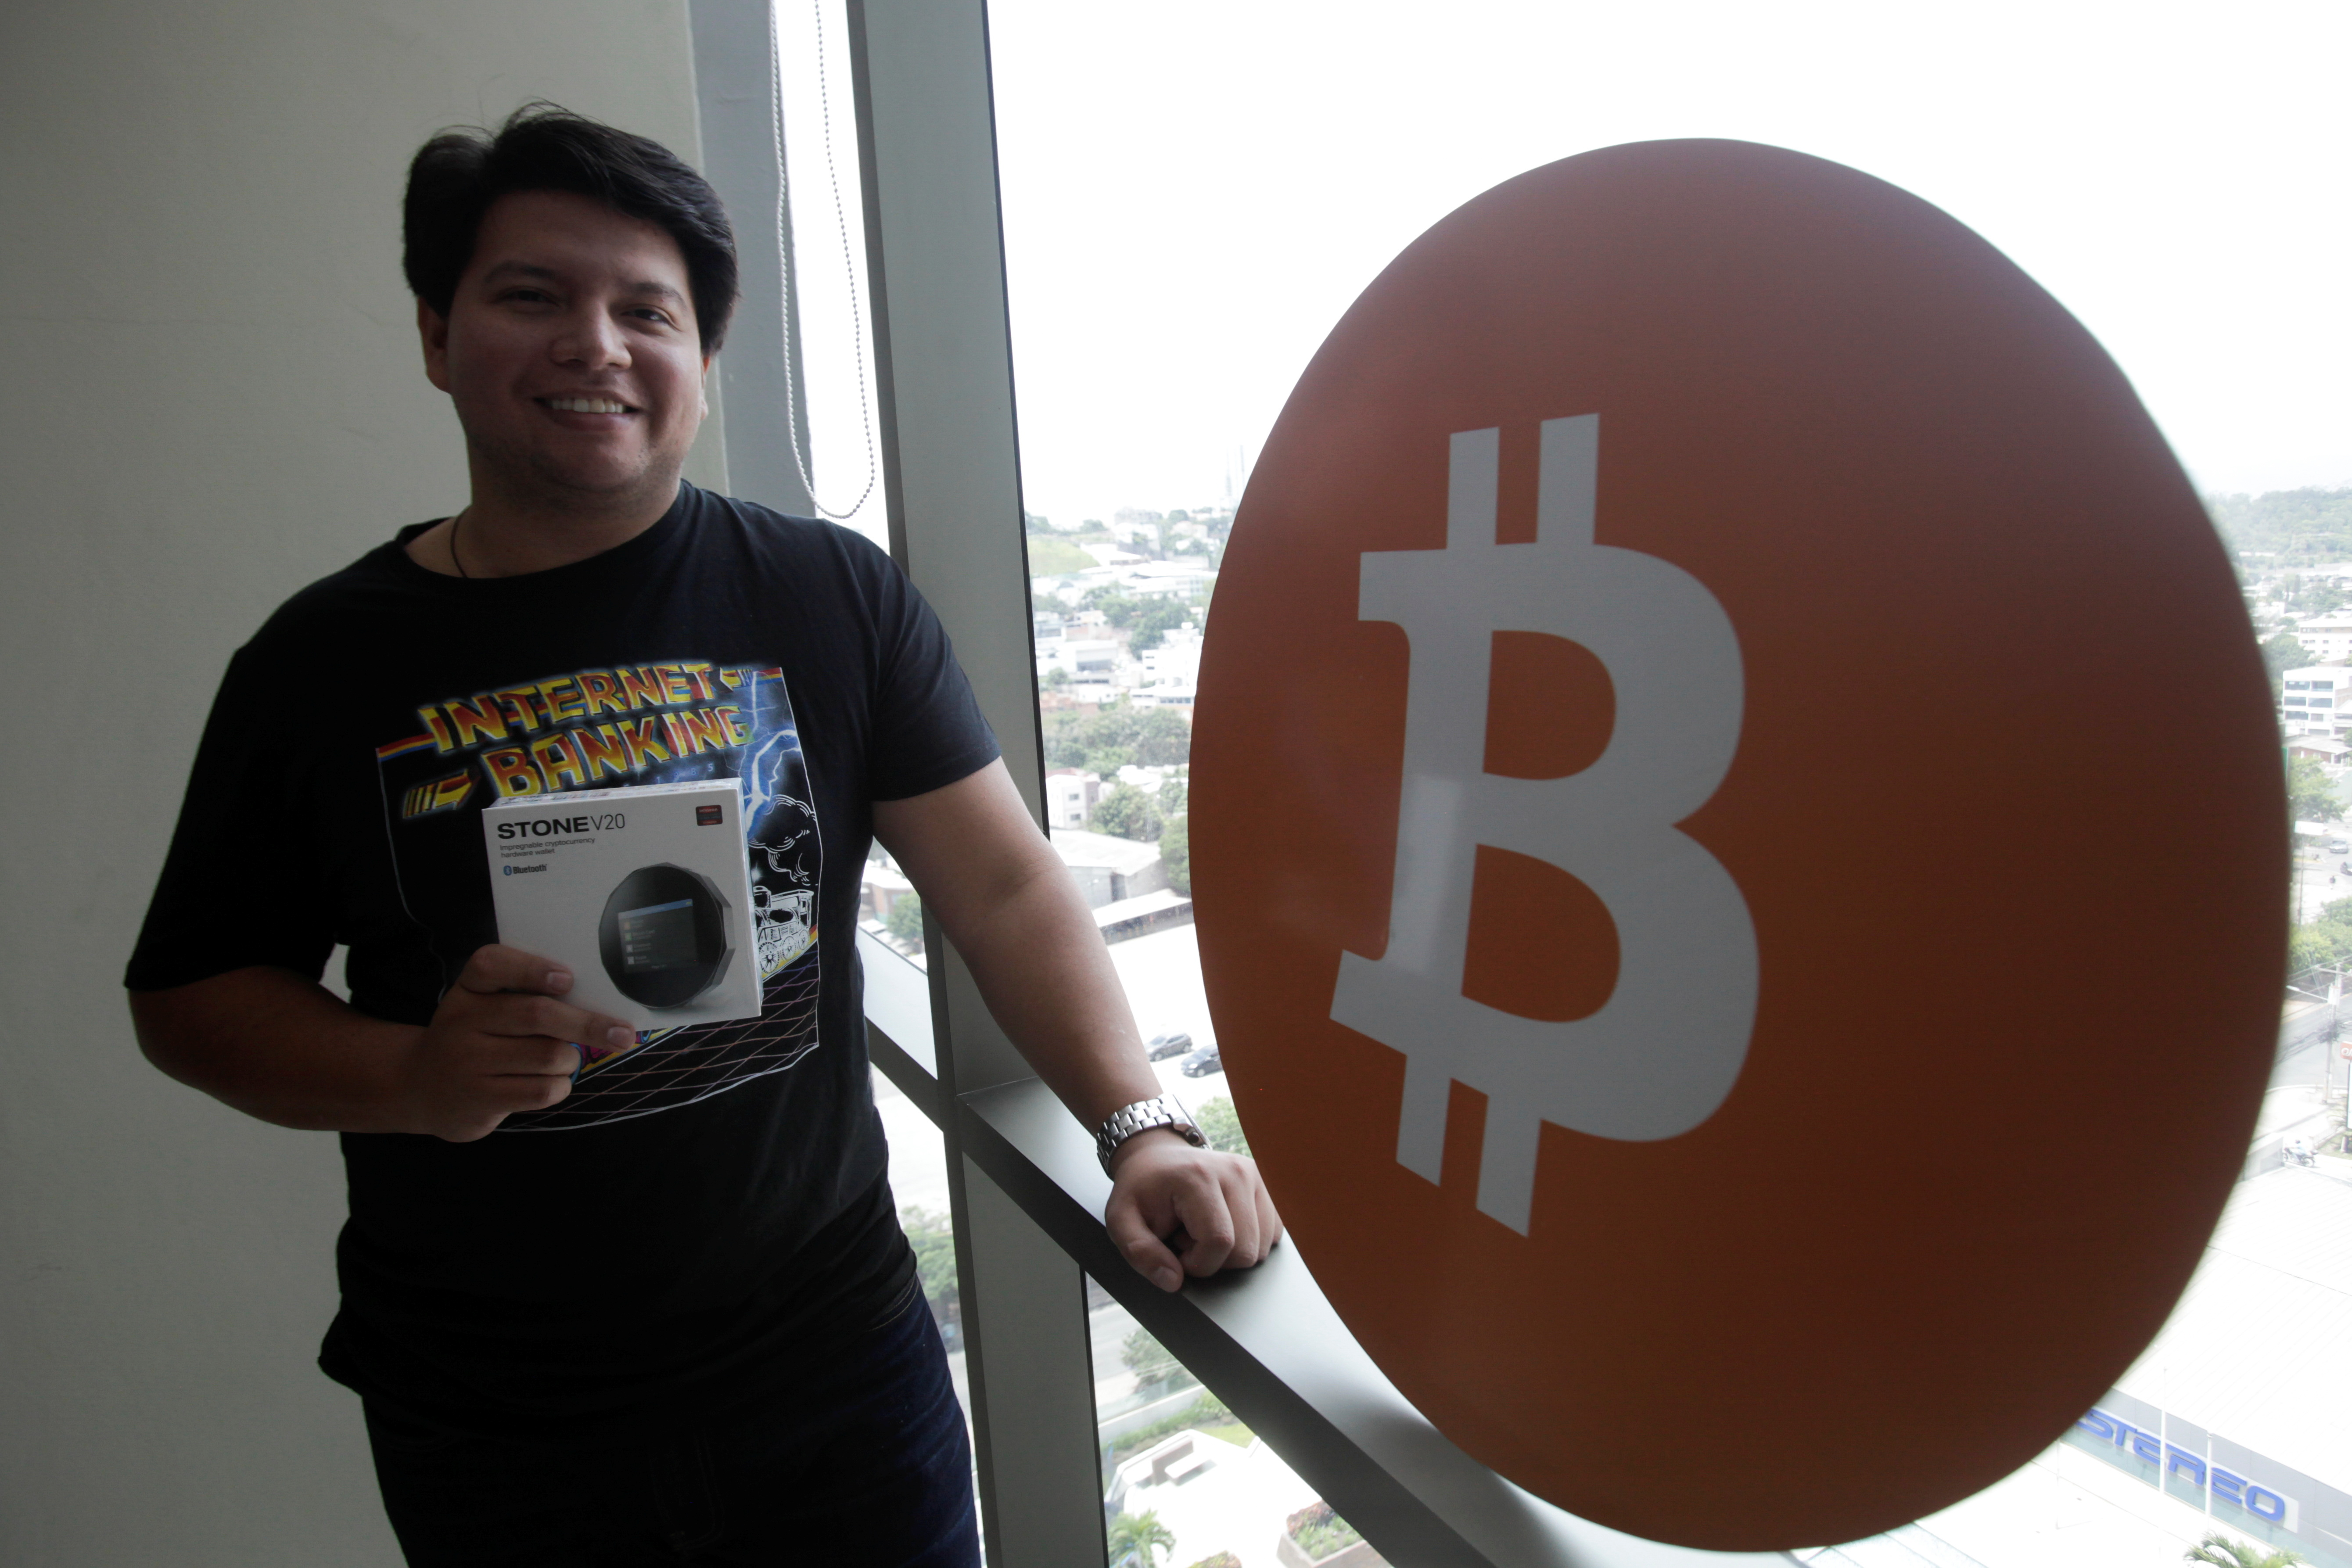 Juan Mayen, 28, chief executive of Honduran firm TGU Consulting Group, poses for a photo with a cryptocurrency hardware wallet at the TGU office where he installed the first cryptocurrency ATM machine in the country that allows users to acquire bitcoin and ethereum using the local lempira currency, in Tegucigalpa, Honduras August 27, 2021. REUTERS/Fredy Rodriguez